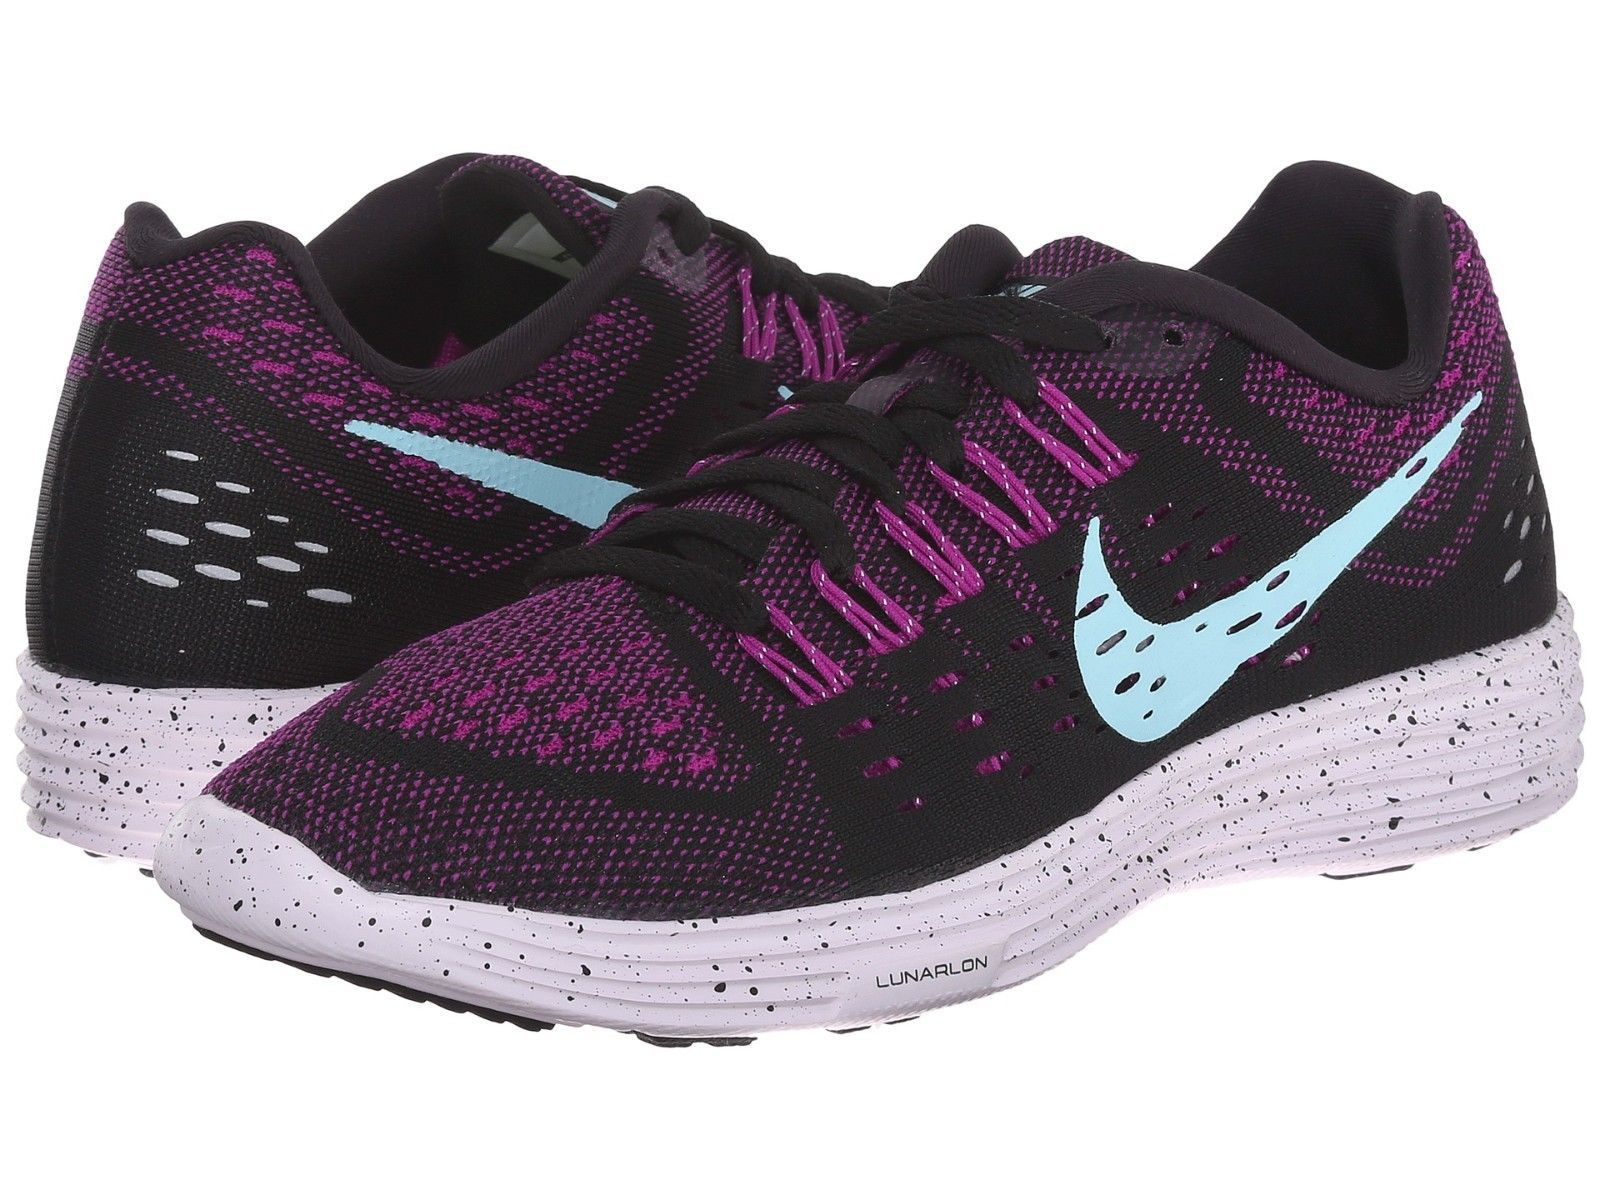 Primary image for Women's Nike LunarTempo Running Shoes, 705462 504 Multip Sizes Vivid Purple/Copa